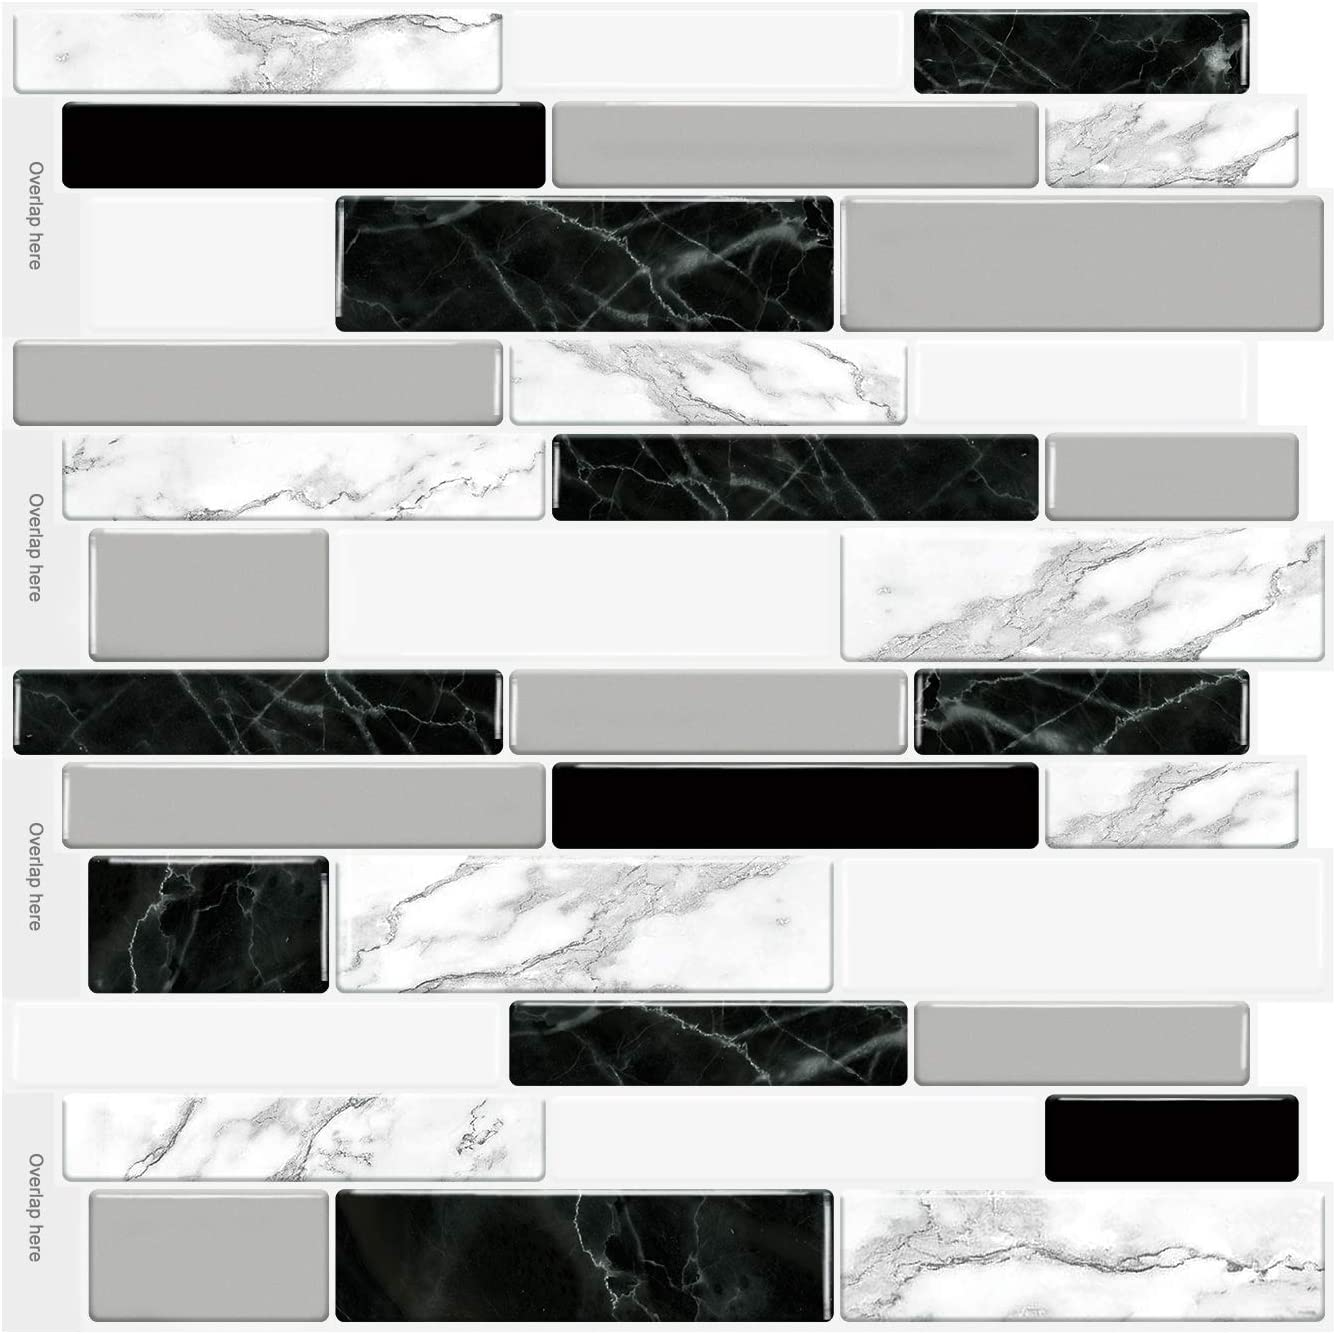 Fabulous Décor Self-Adhesive Tiles 3D D GEL Atlanta Mall Easy store Decals 1mm